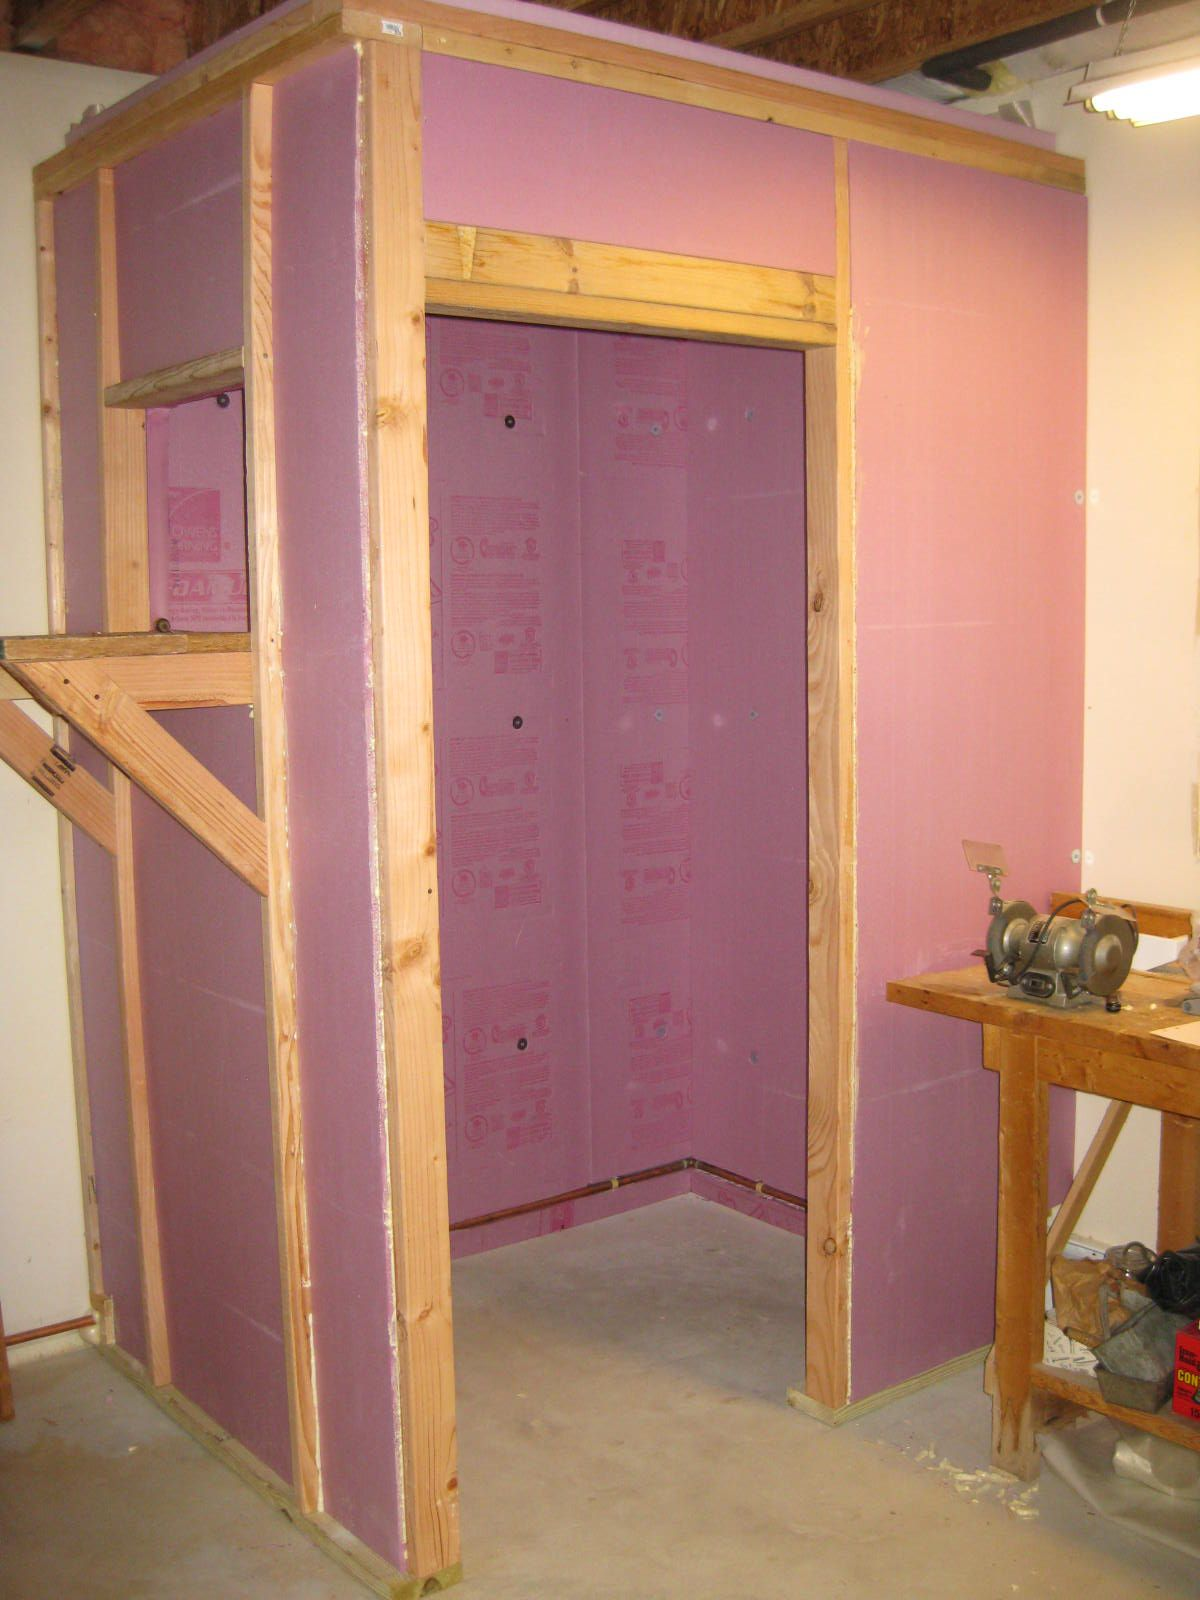 Building A Walk In Cooler Walk In Freezer Home Home Projects